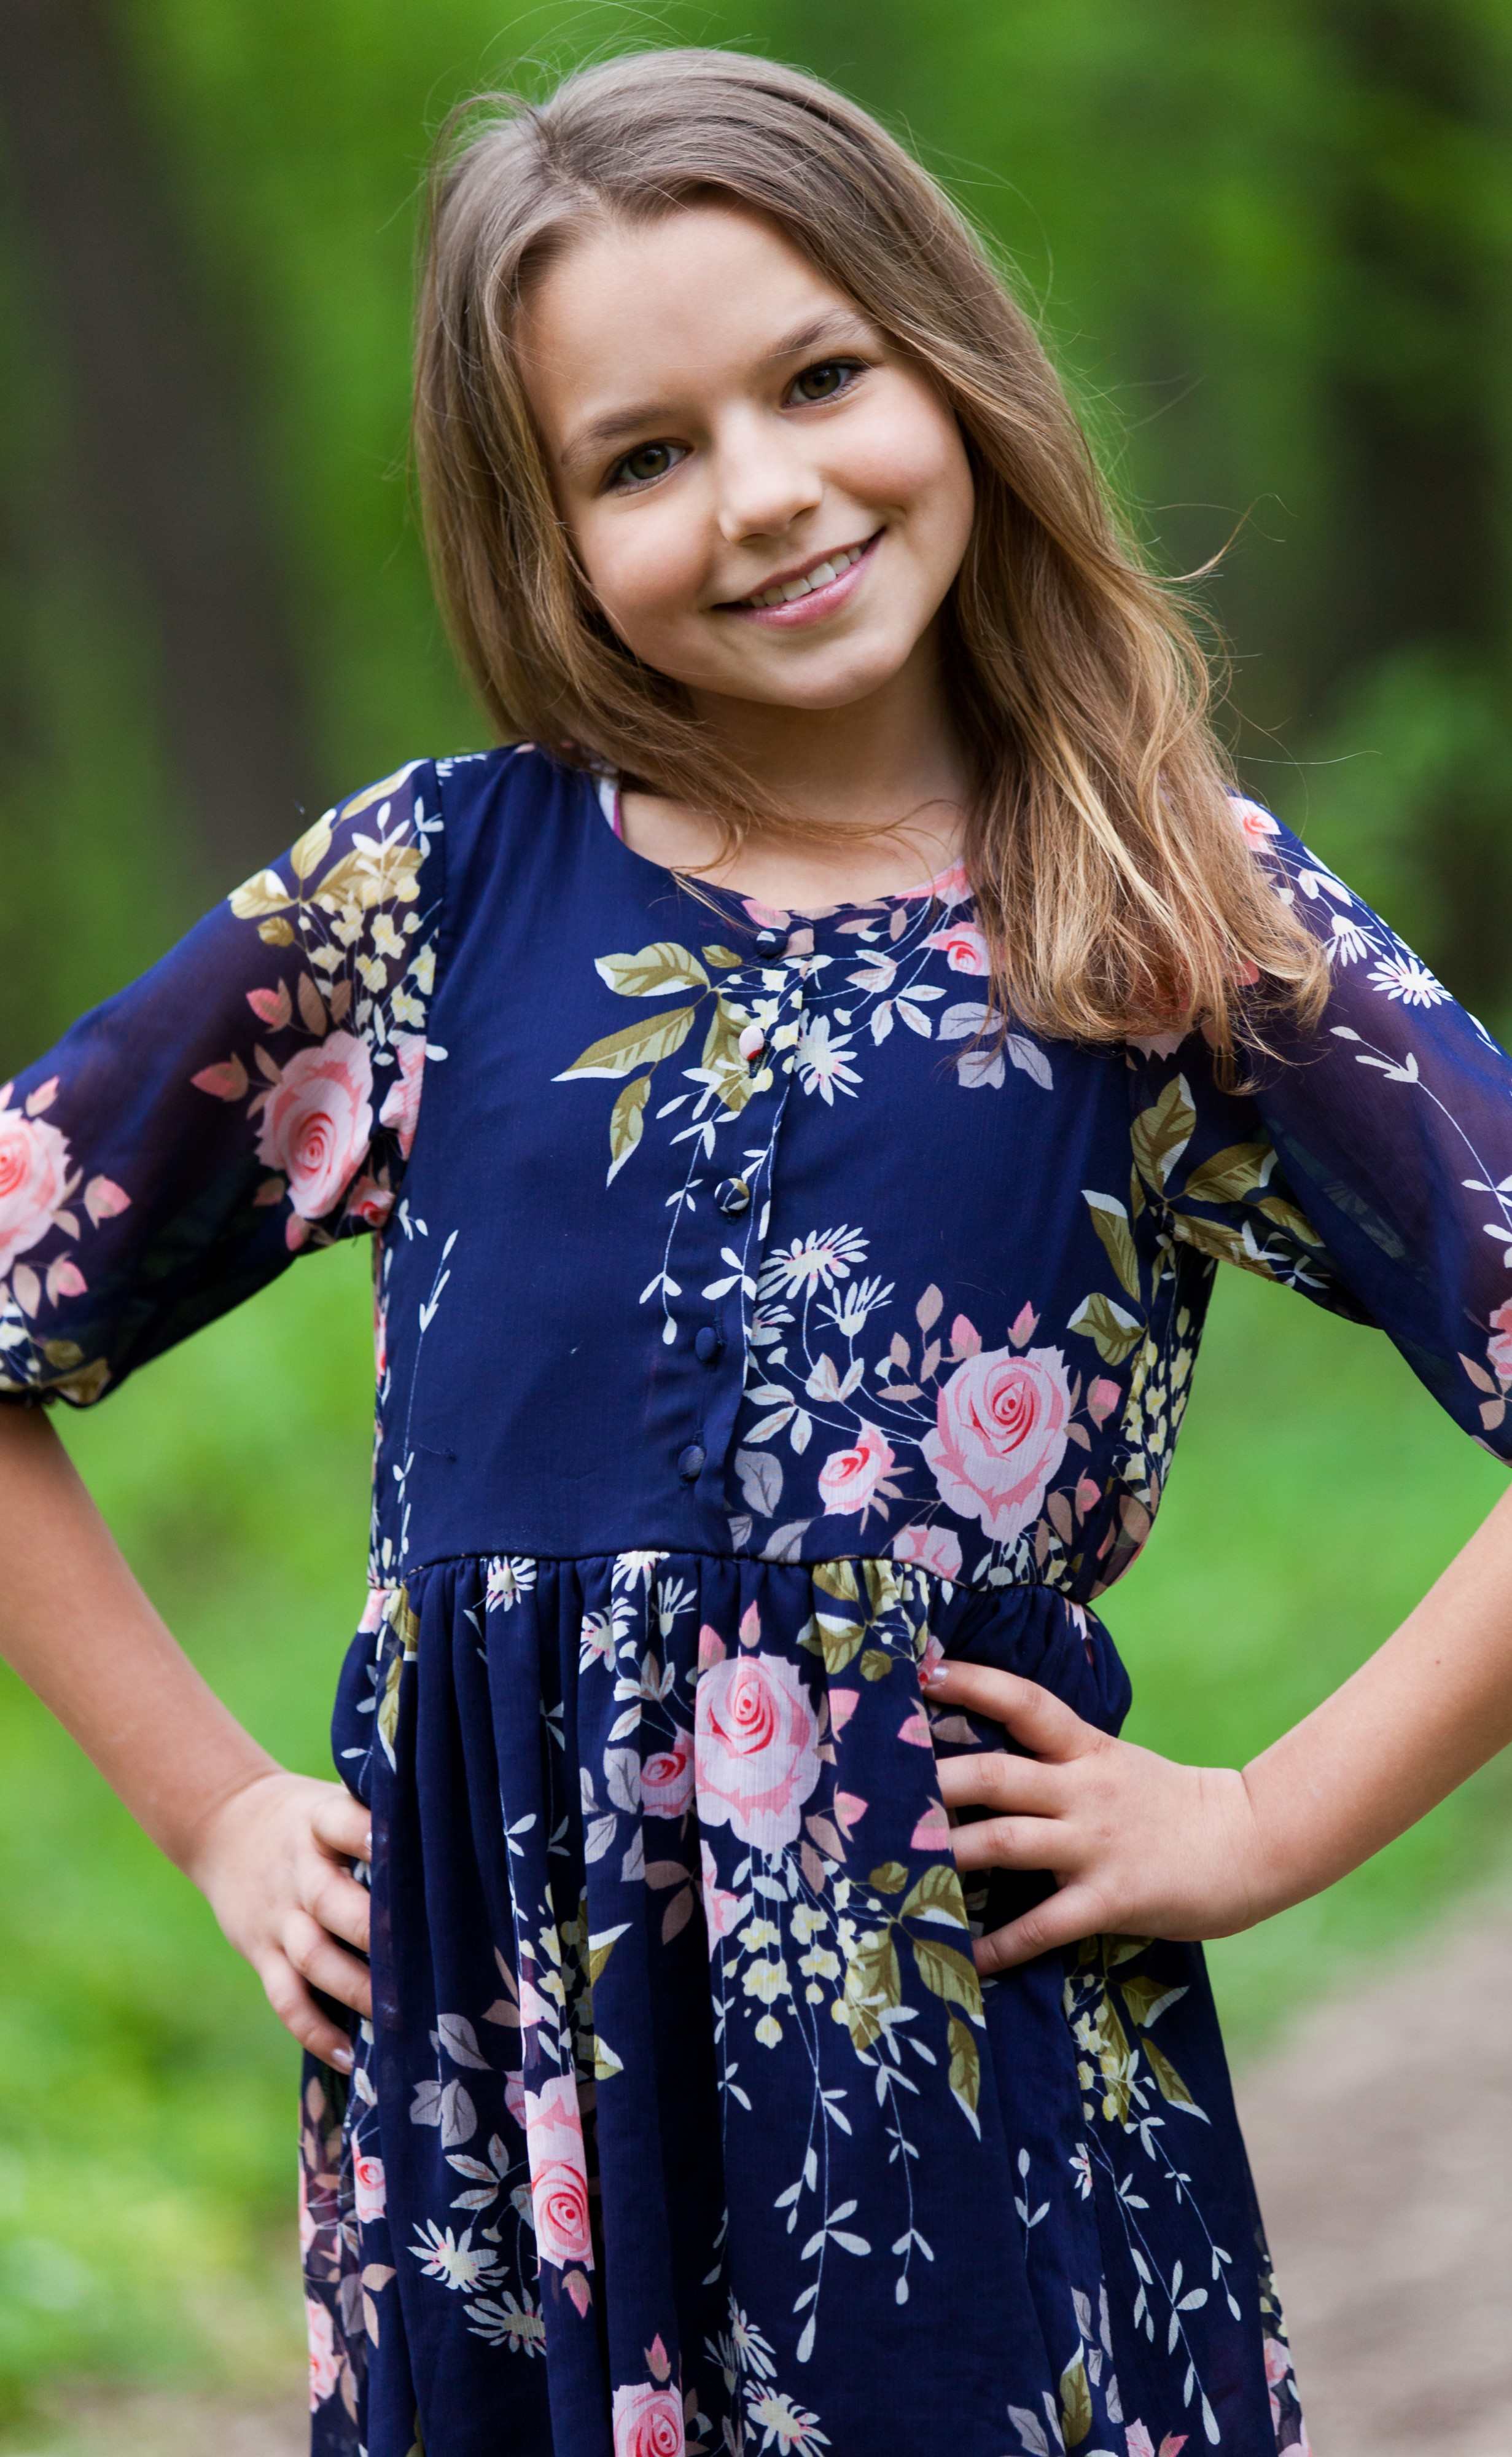 Photo Of A Cute 12 Year Old Girl Photographed In May 2015 Picture 9